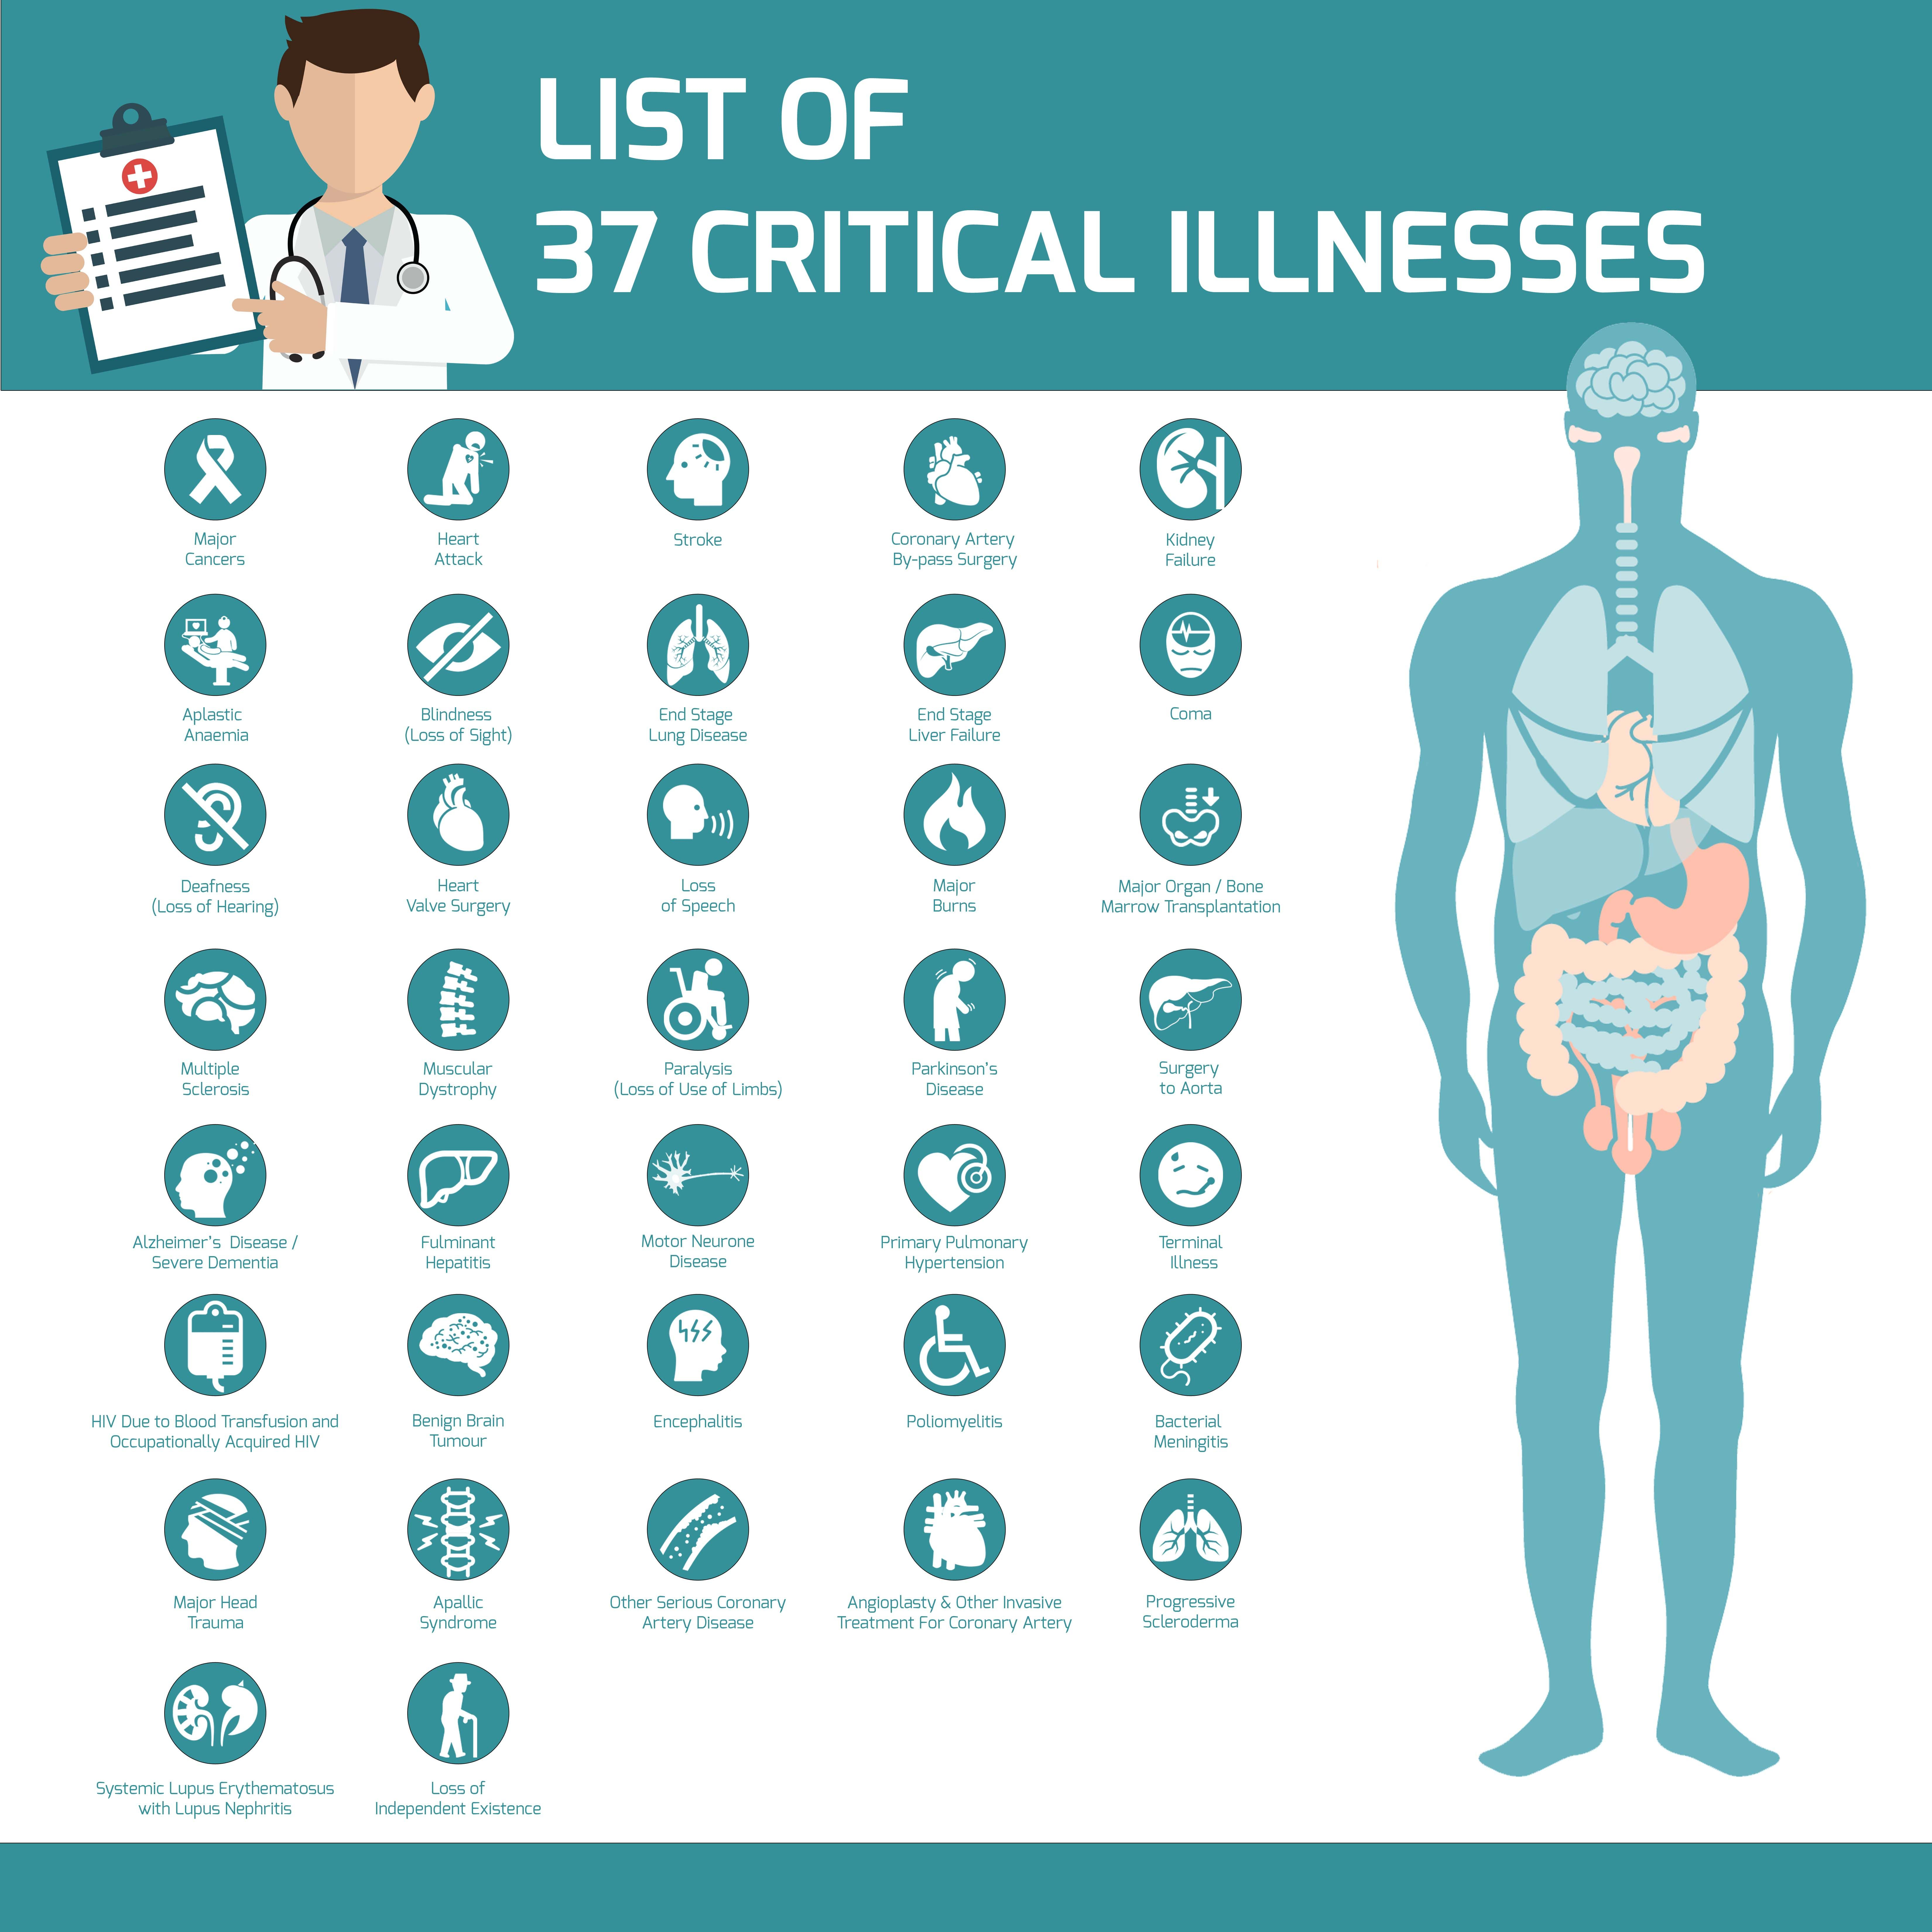 List of 37 Critical Illnesses Singapore